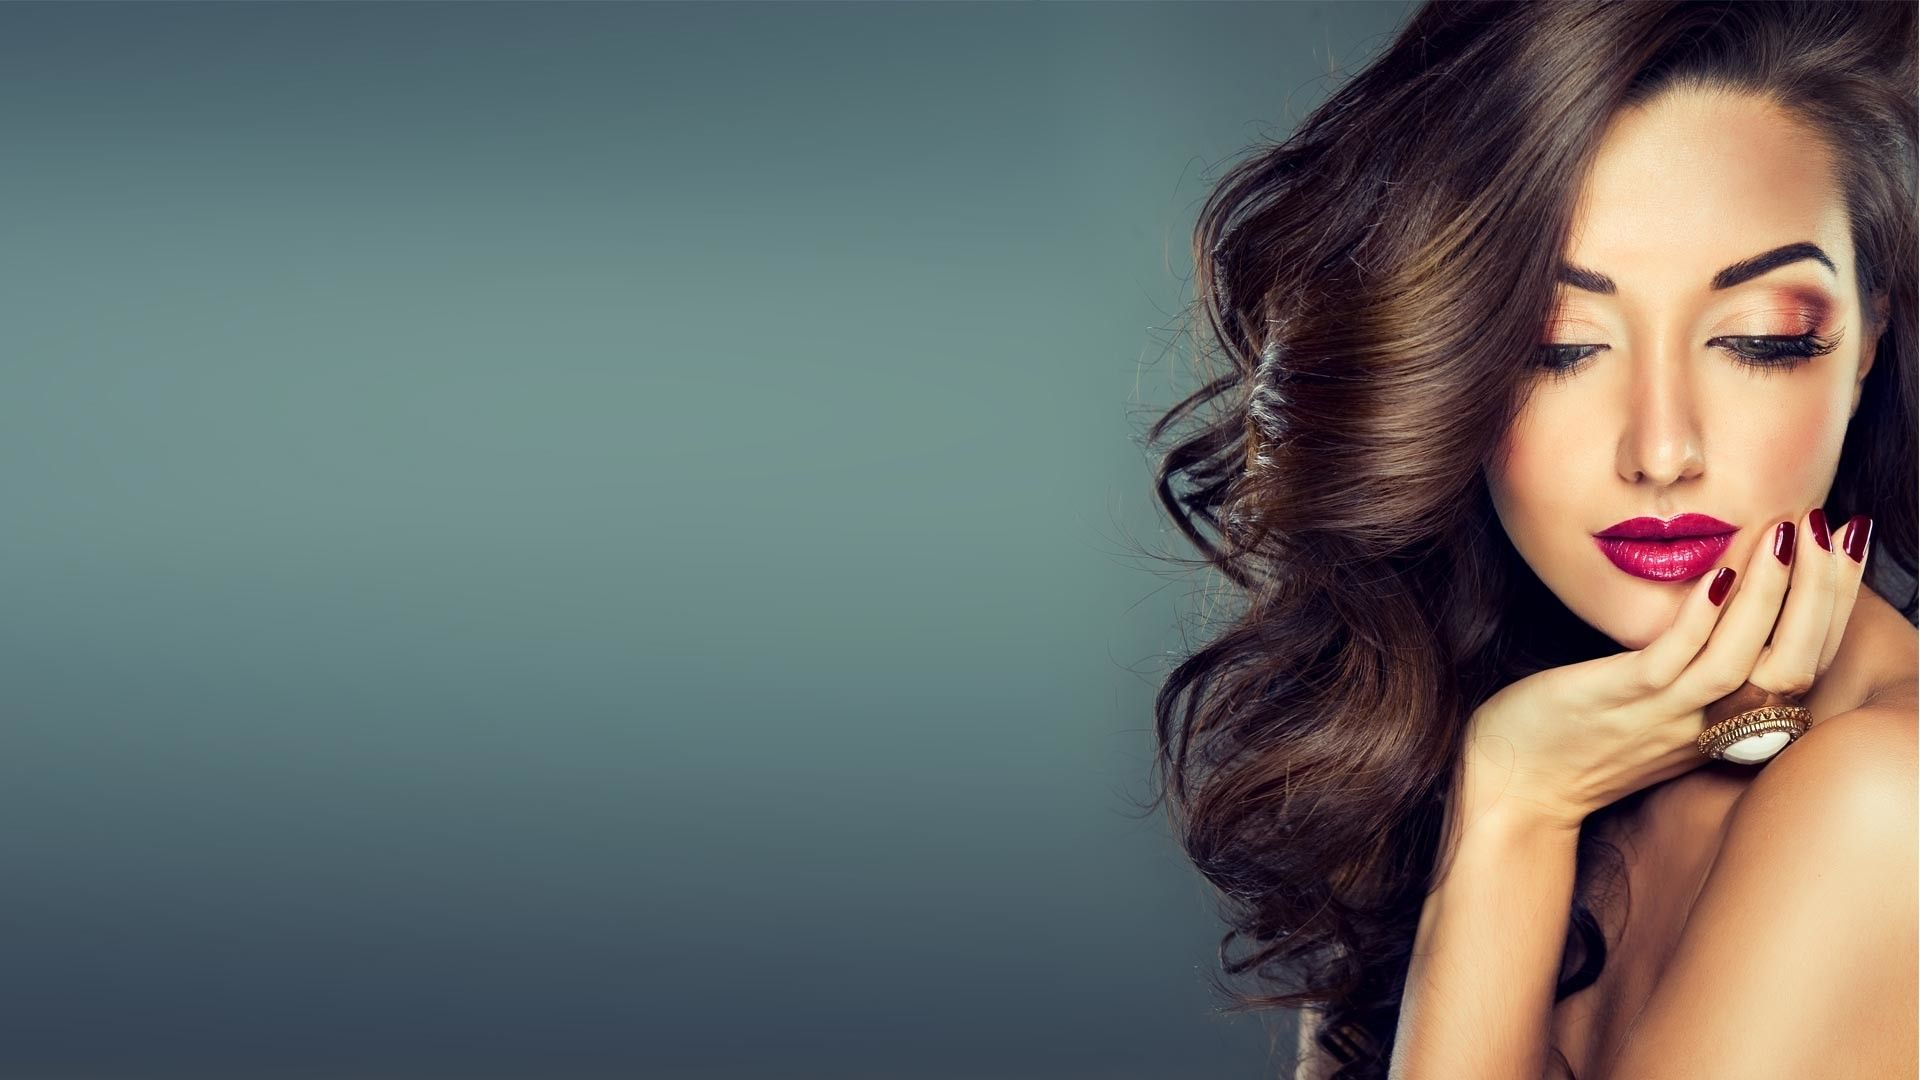 Res 1920x1080 Download Hair And Beauty Salon Beauty Hair Beauty